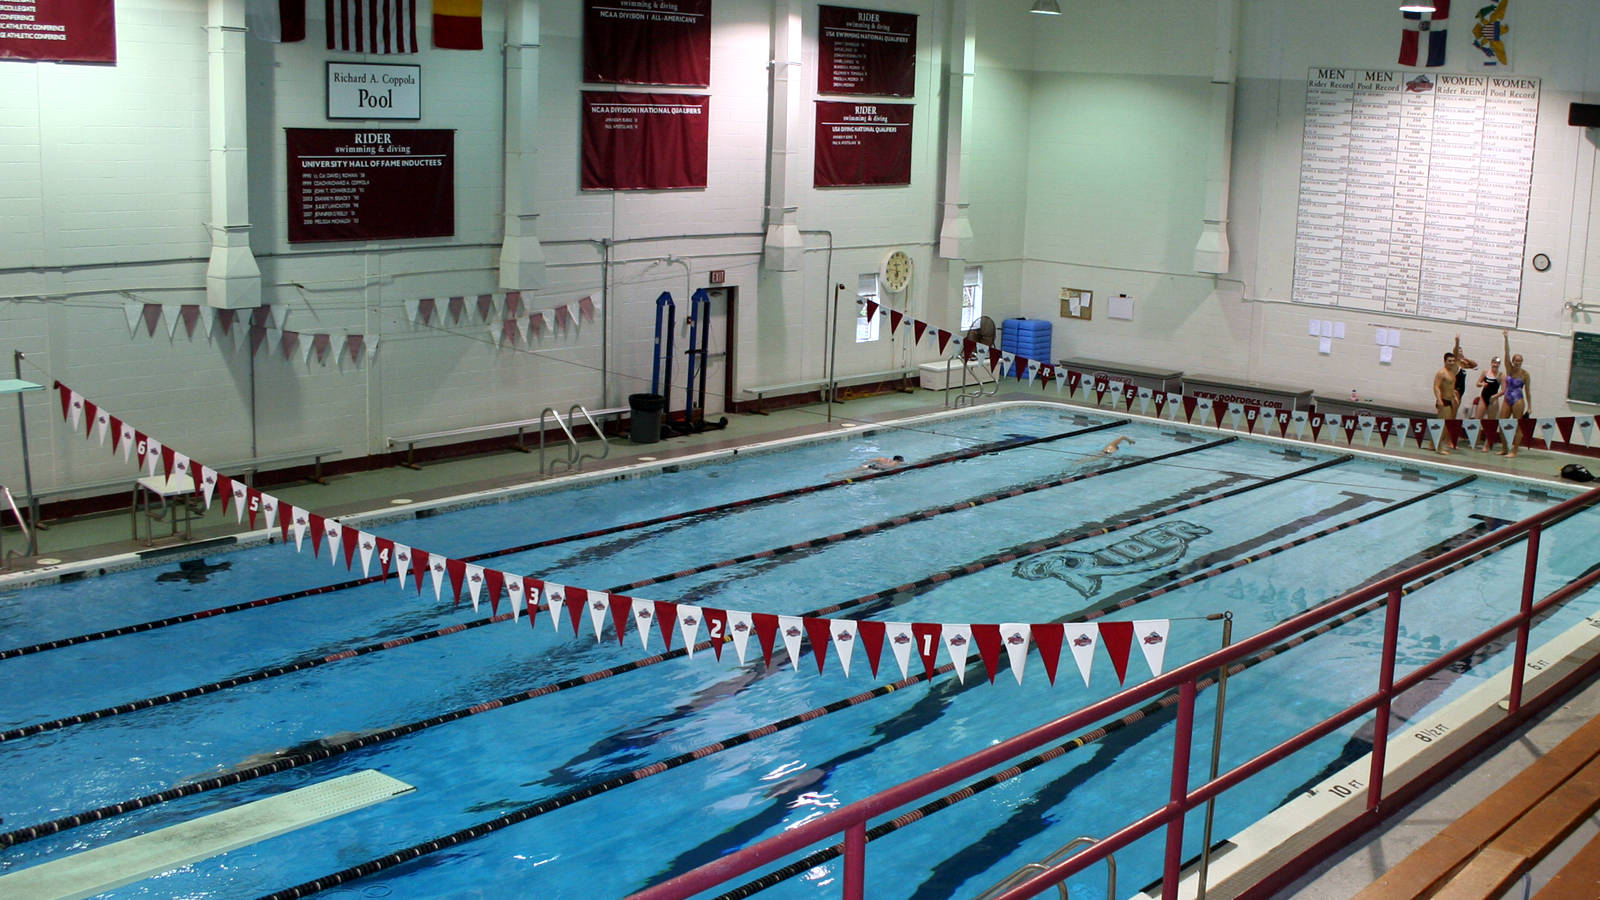 Coppola Pool Rider University Athletics